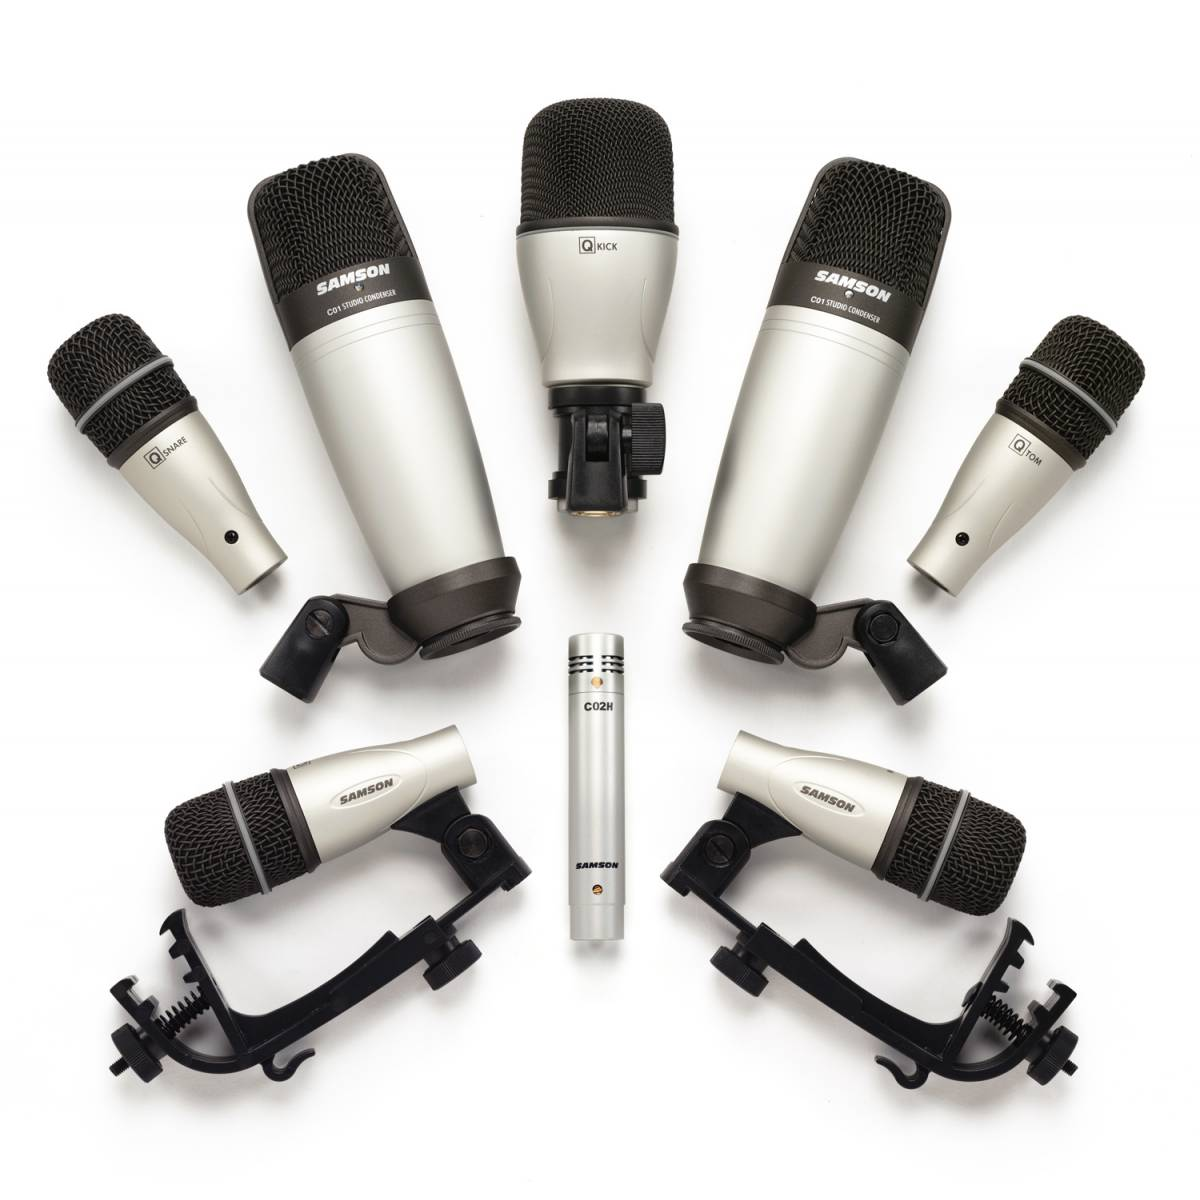 samson 8 kit 8 piece drum mic set drum percussion microphones from inta audio uk. Black Bedroom Furniture Sets. Home Design Ideas